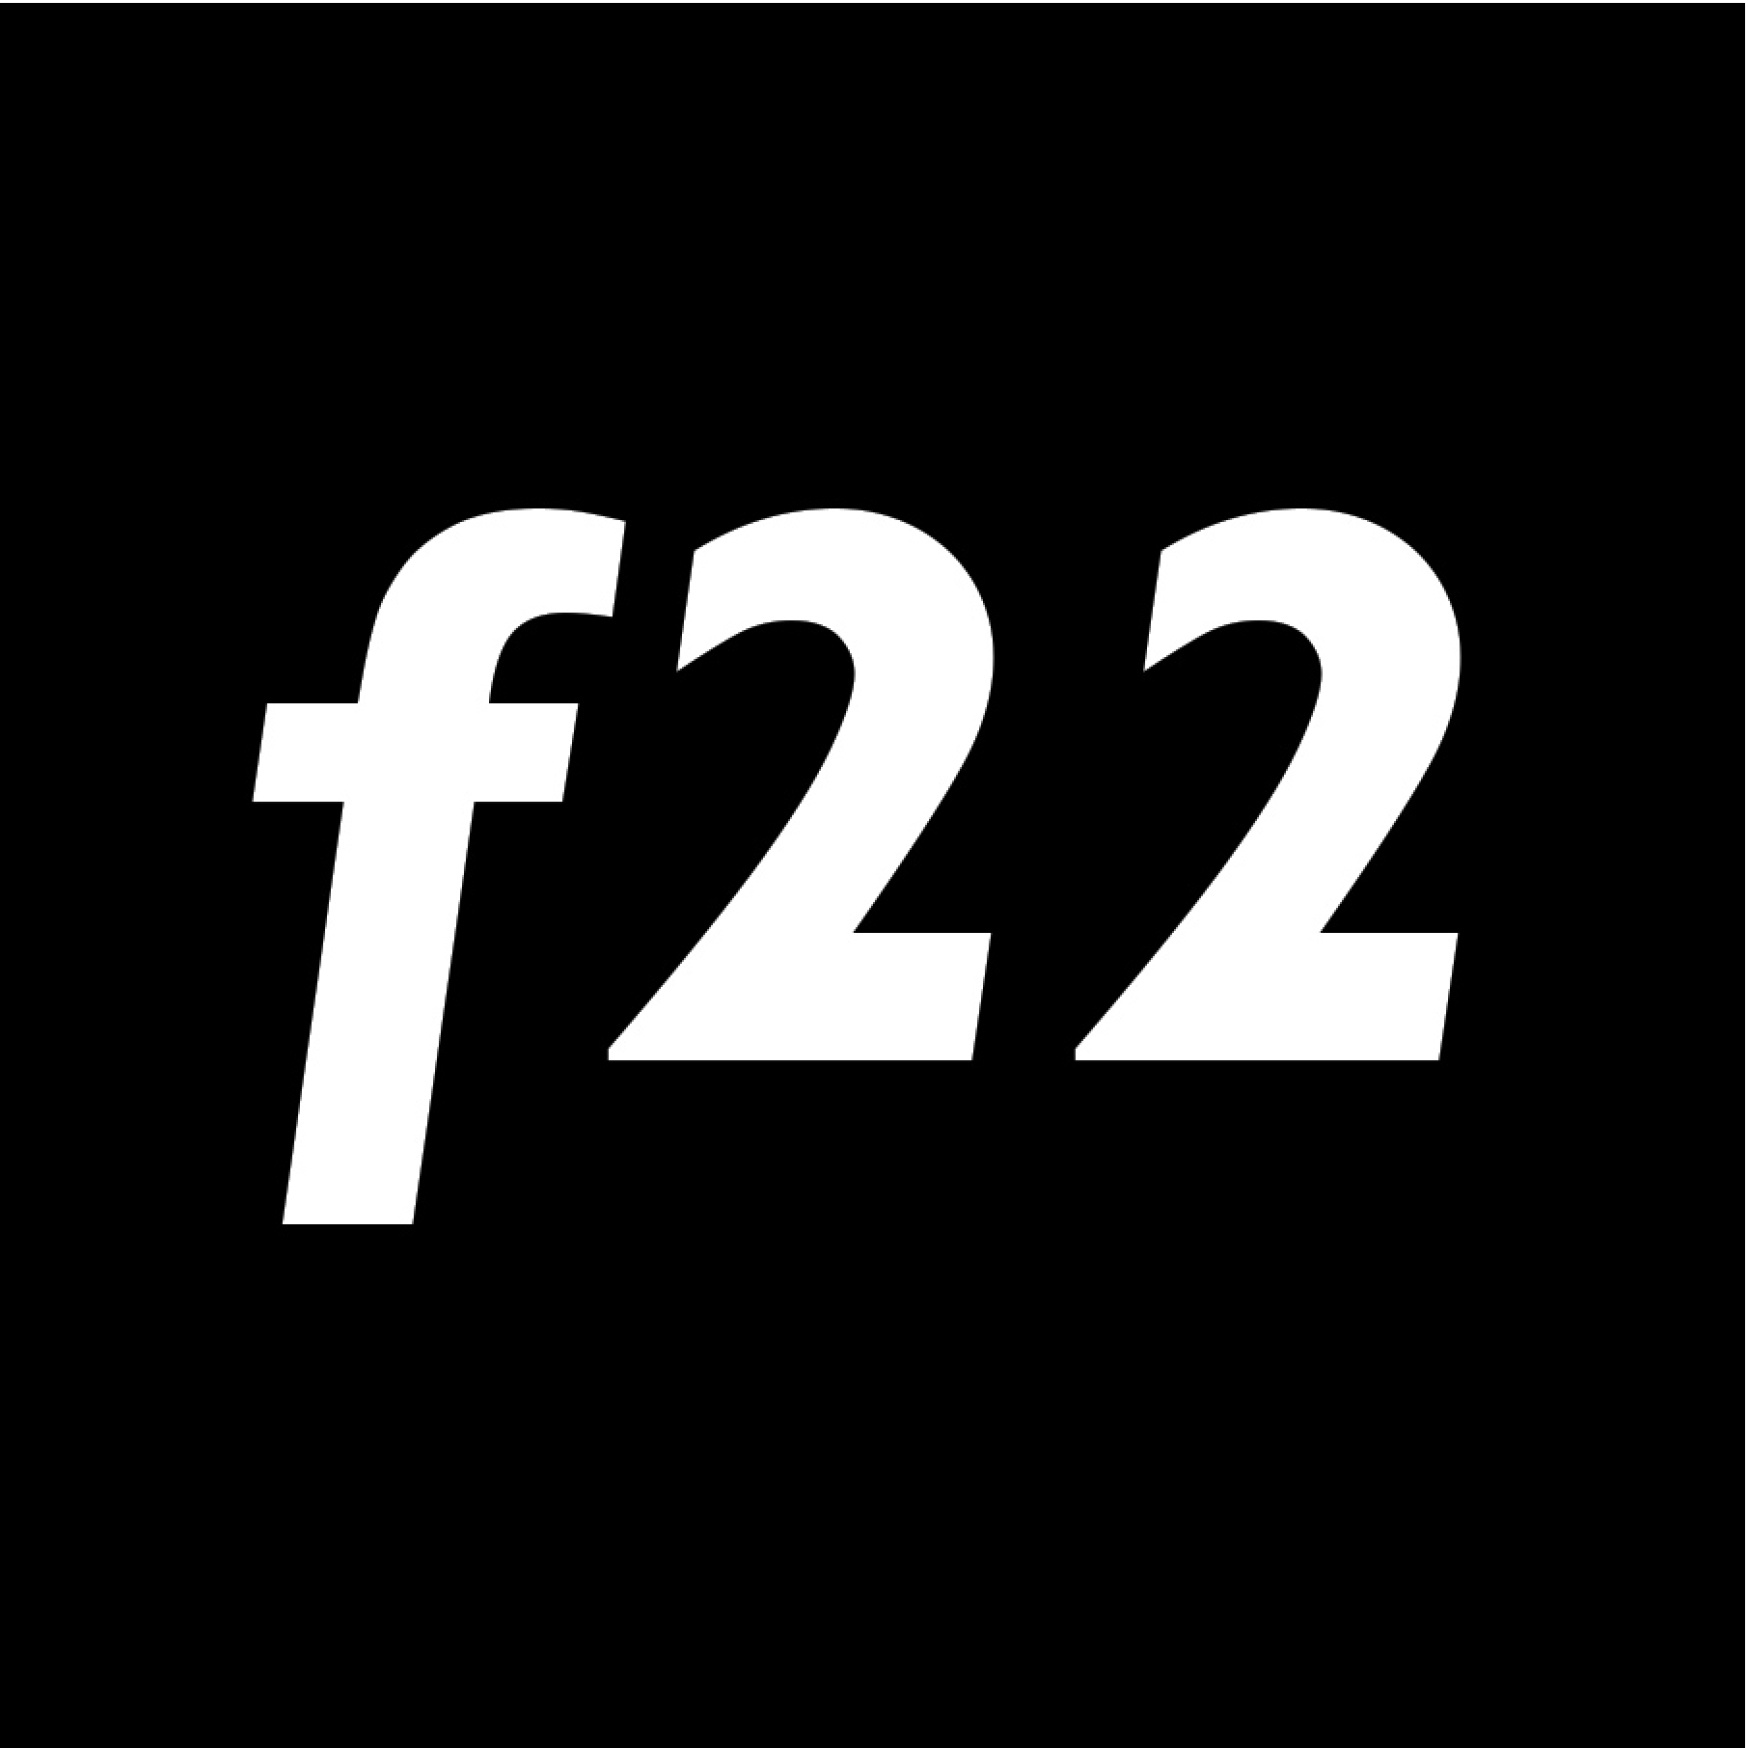 5th August 2020 - f22 Live 05